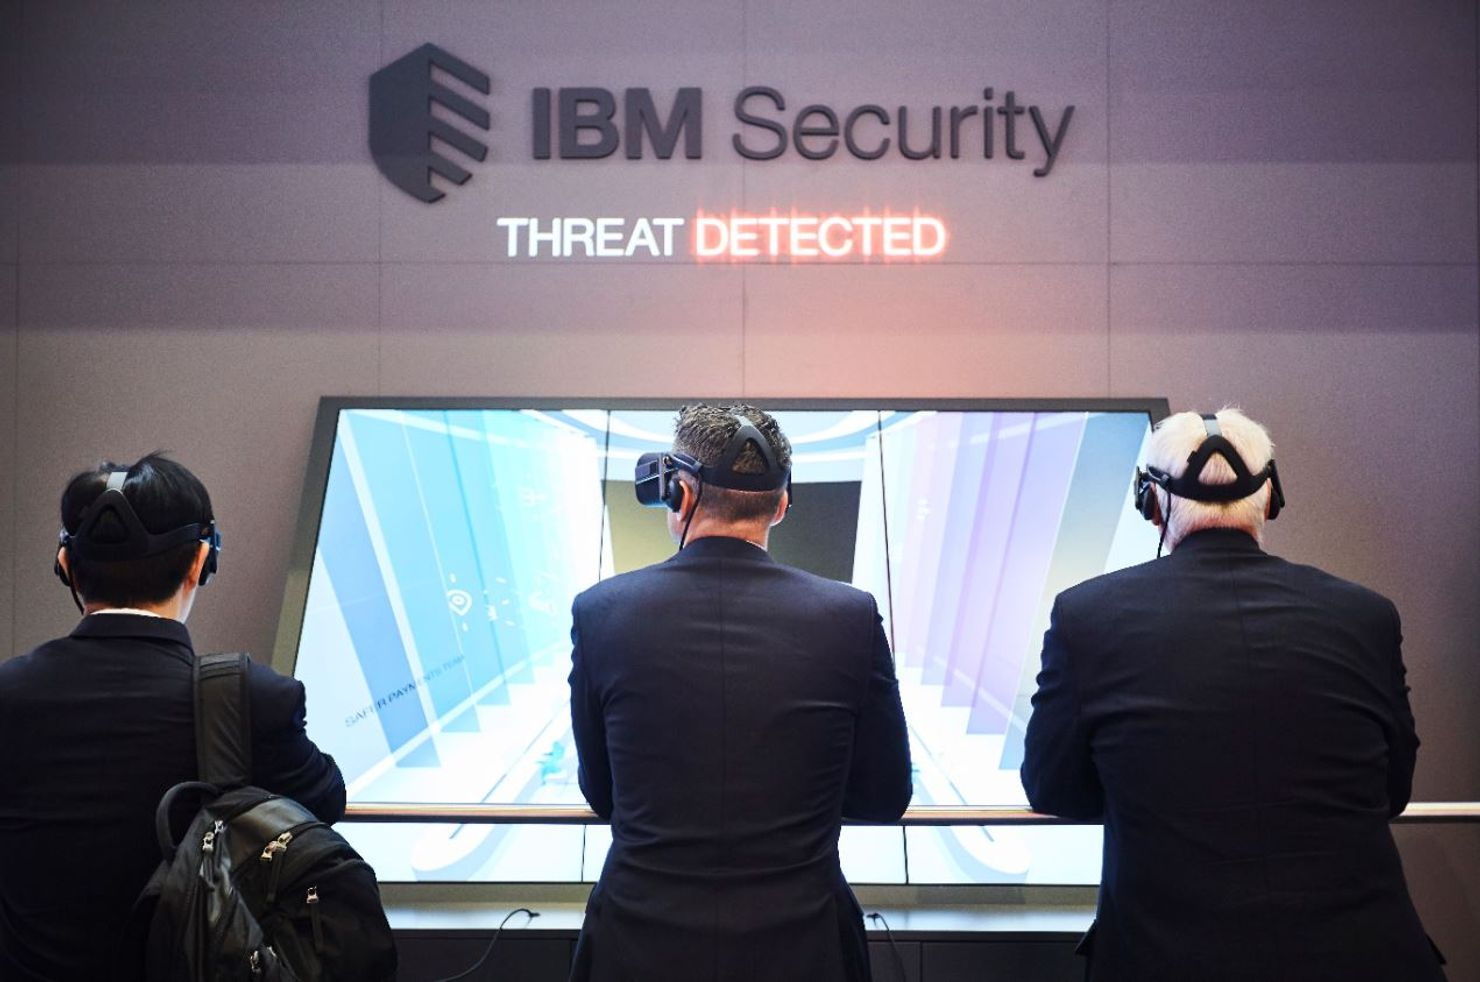 Image 1 for IBM Threat Detector at SIBOS